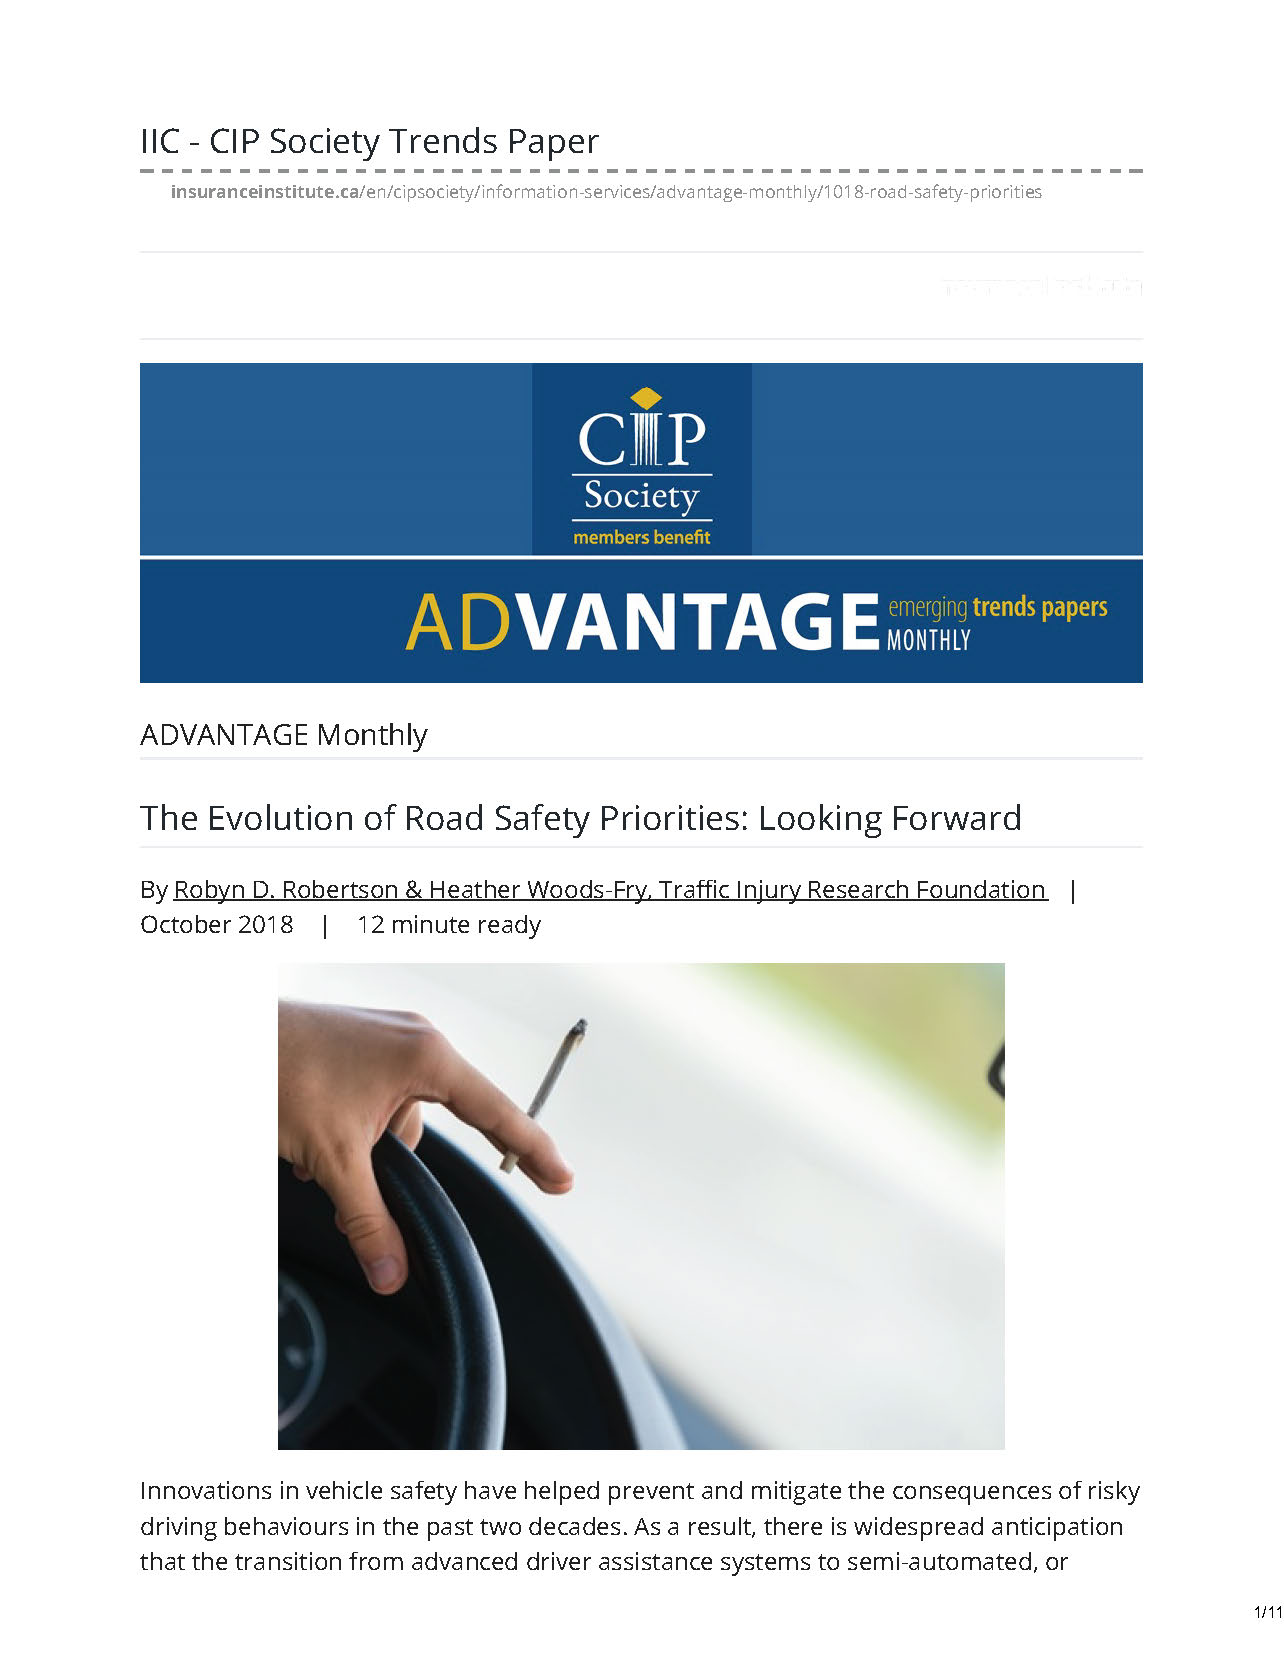 The Evolution of Road Safety Priorities Looking Forward